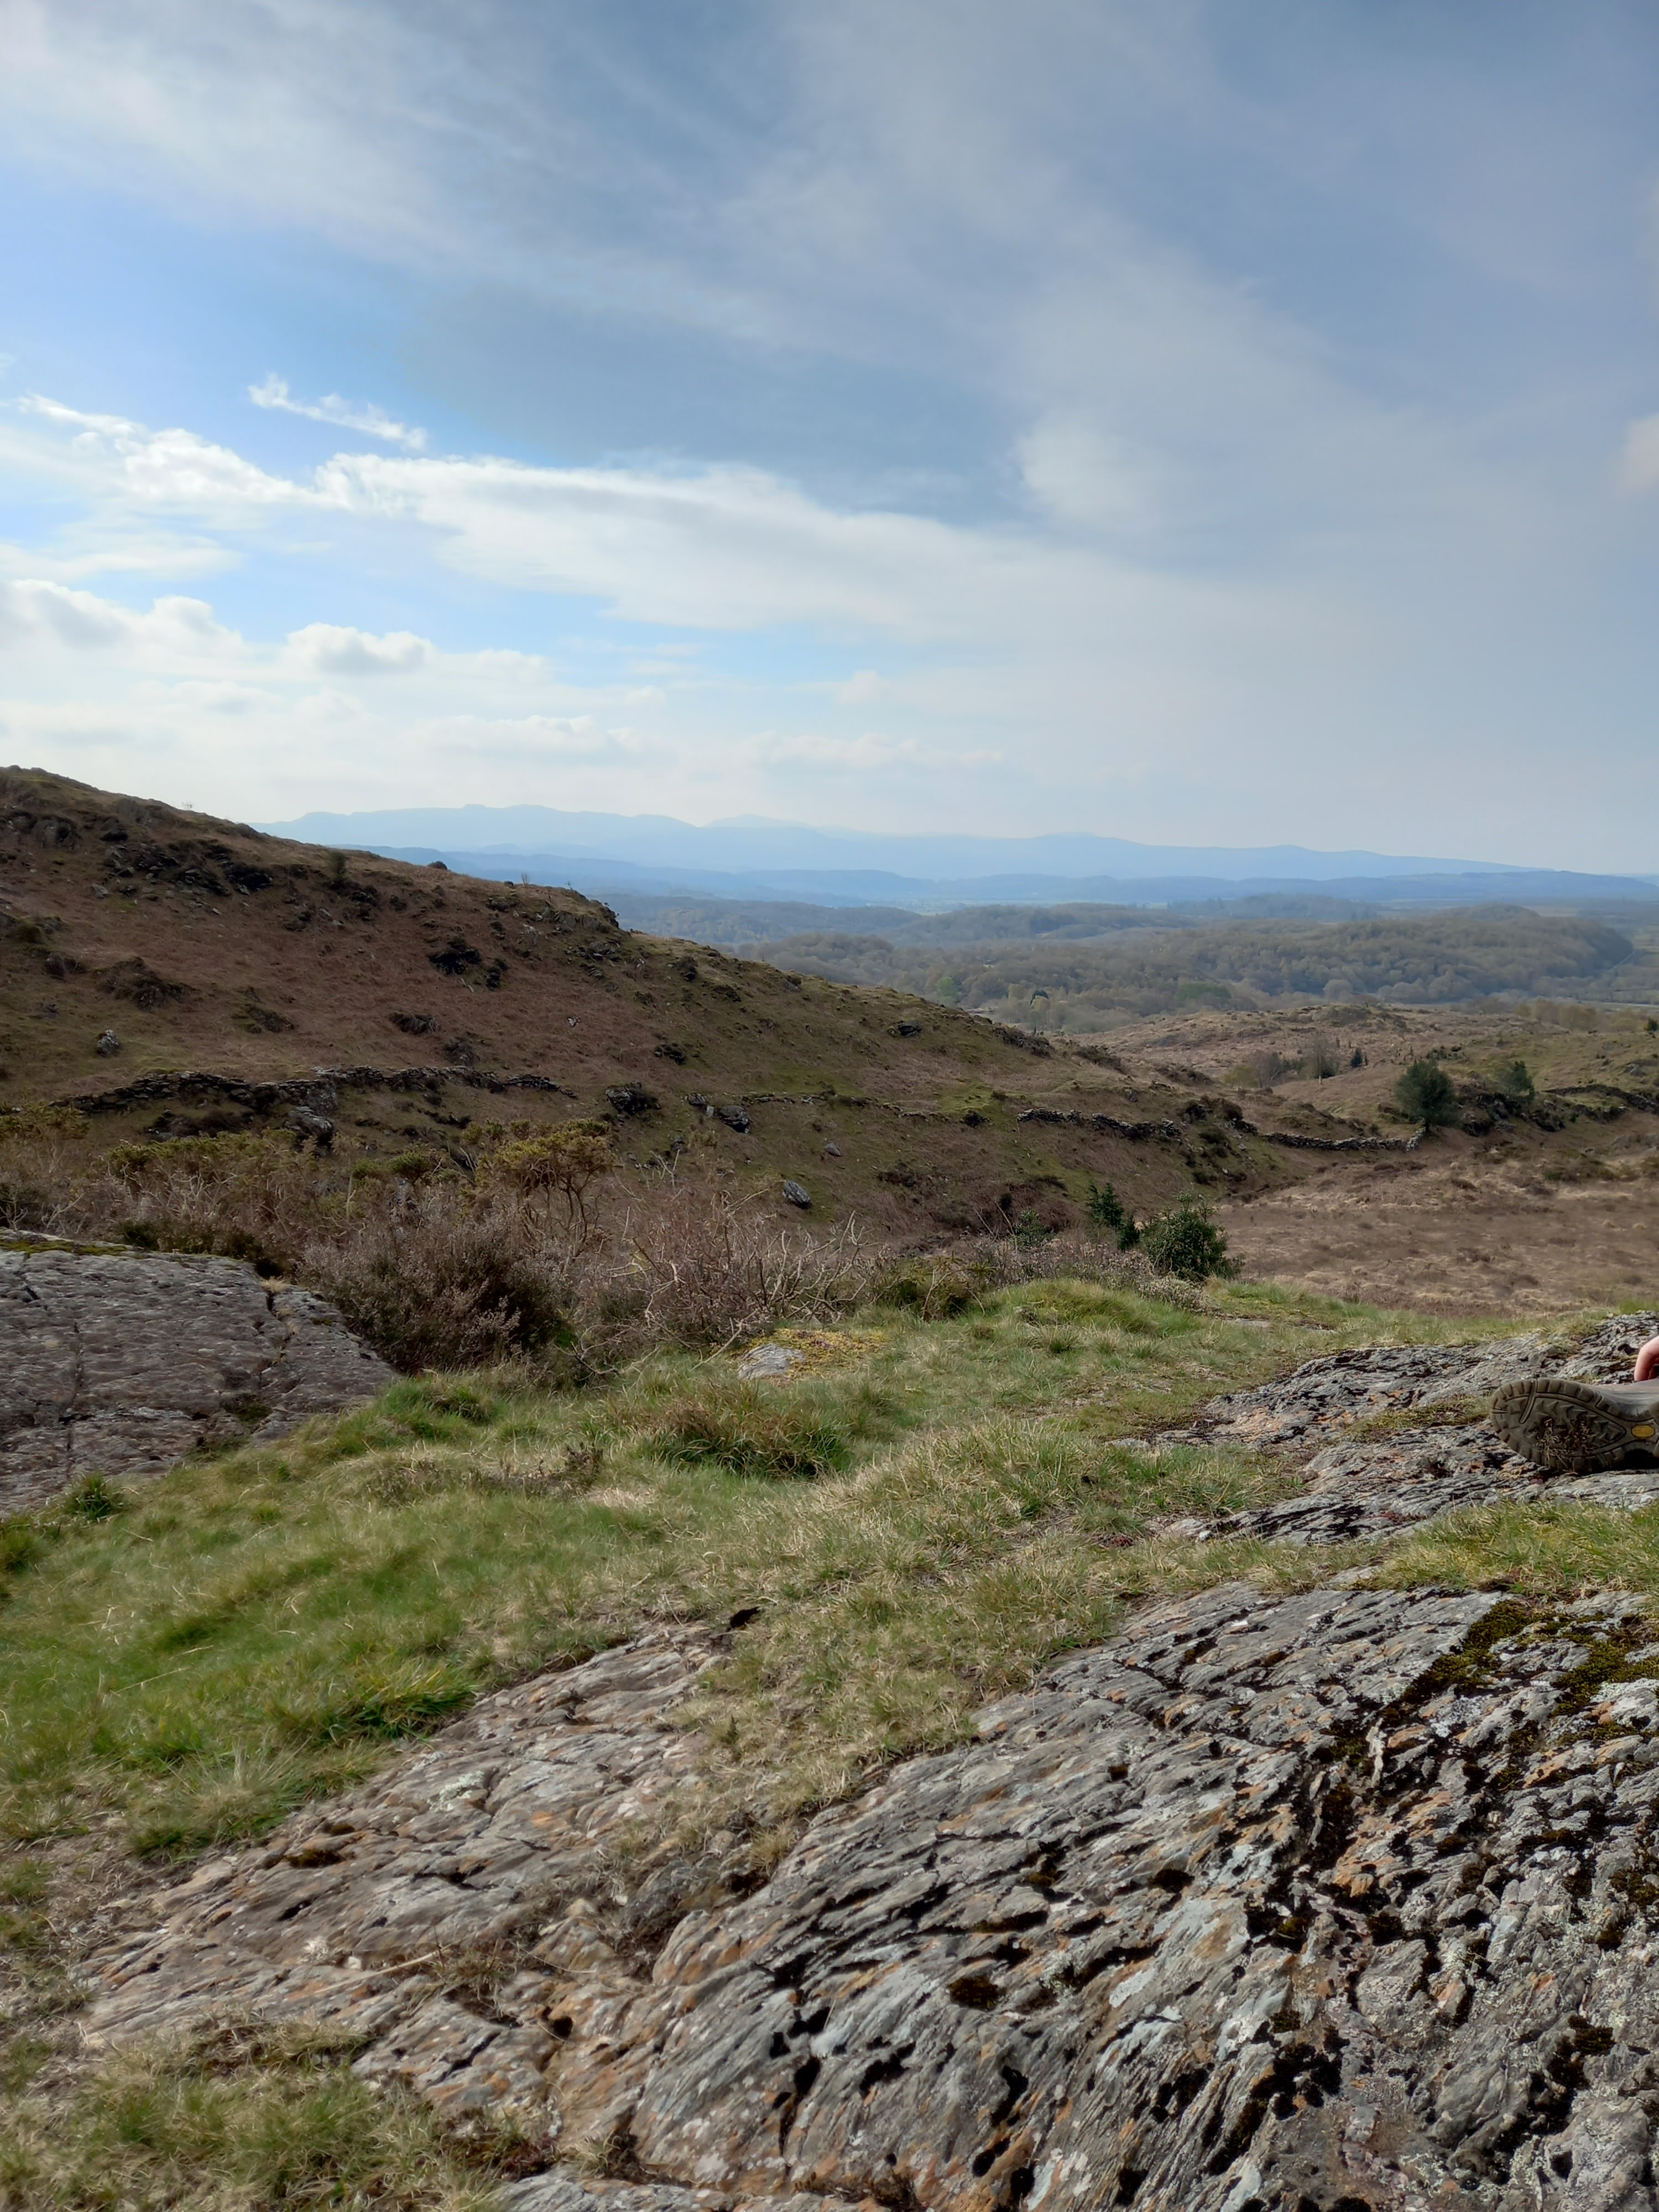 Photo by Diane Woodrow from near the top of Conwy mountain towards the interior of Snowdonia